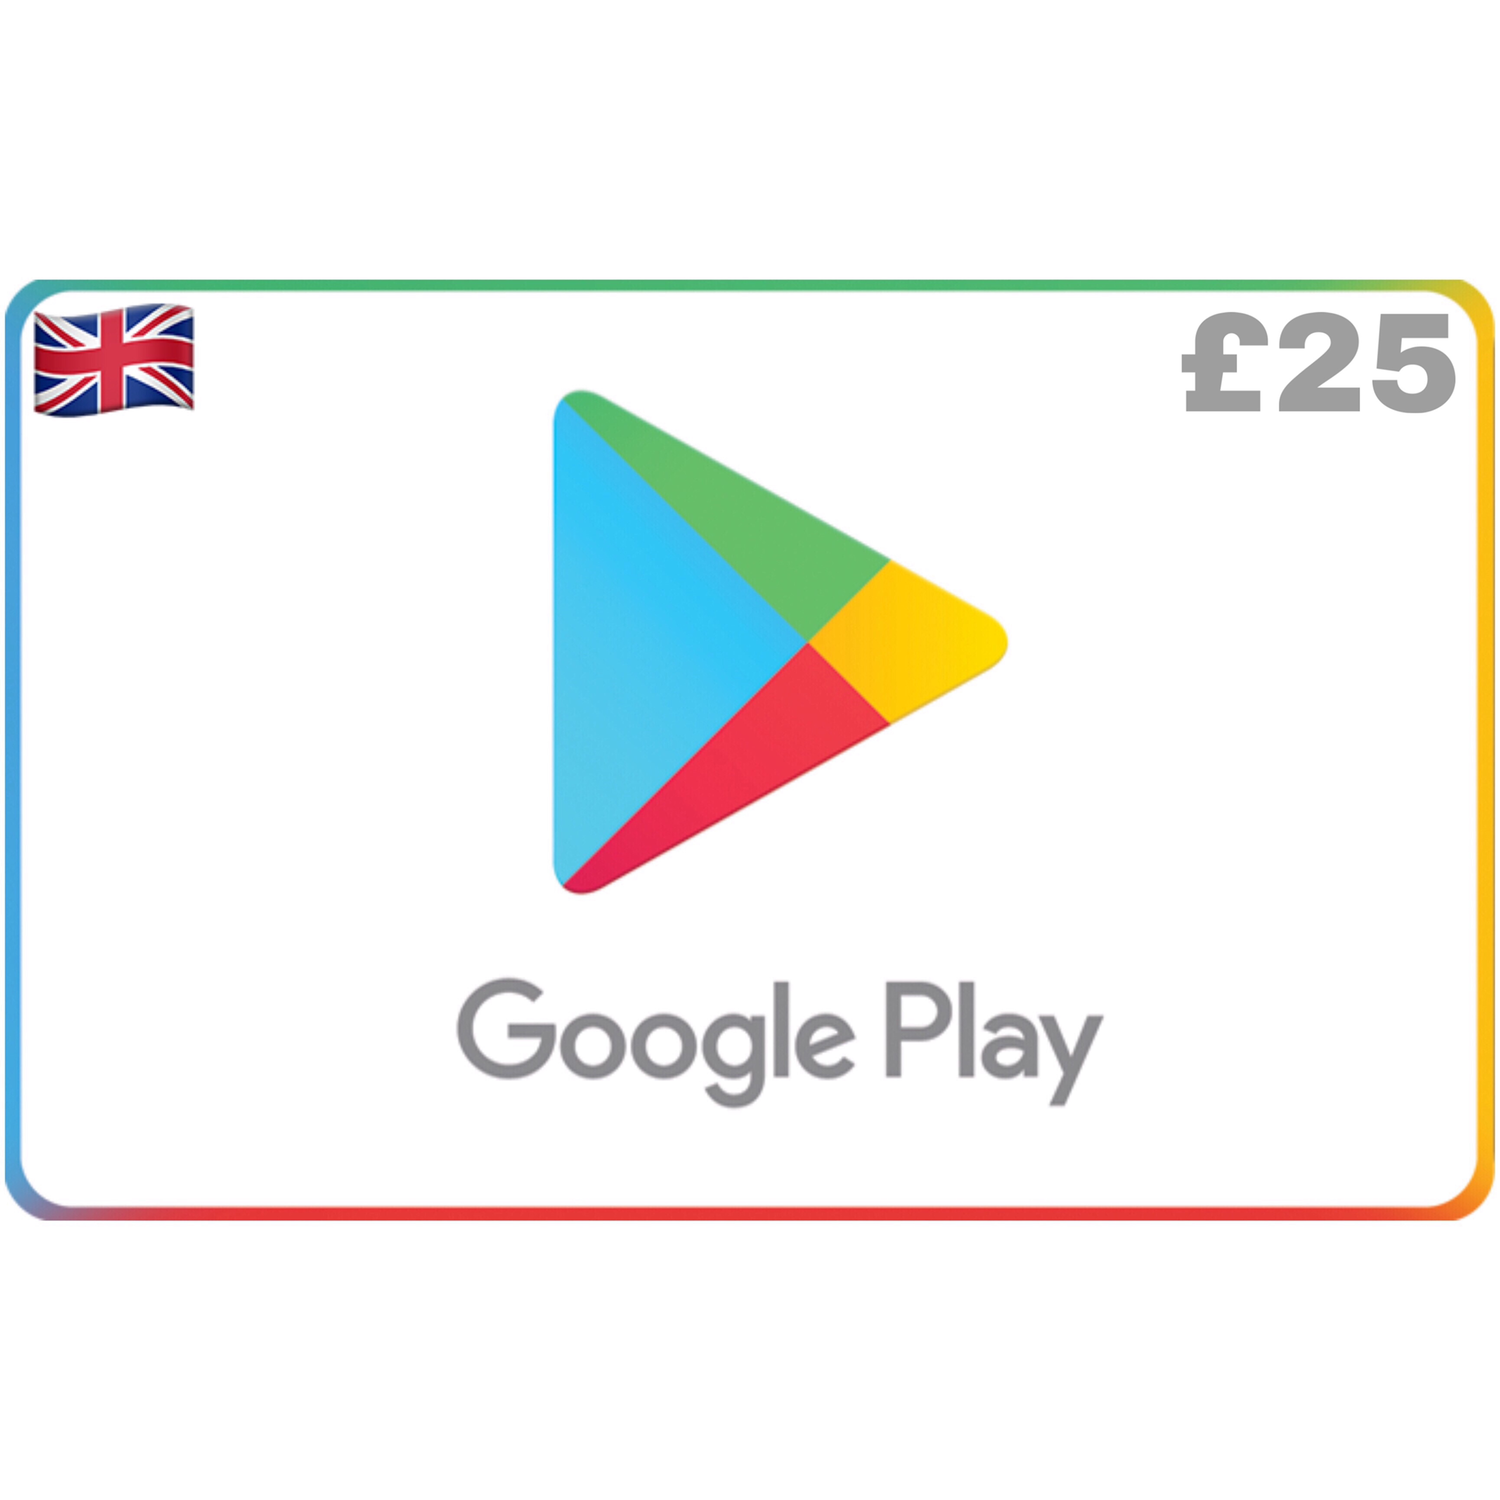 Google Play UK GBP £25